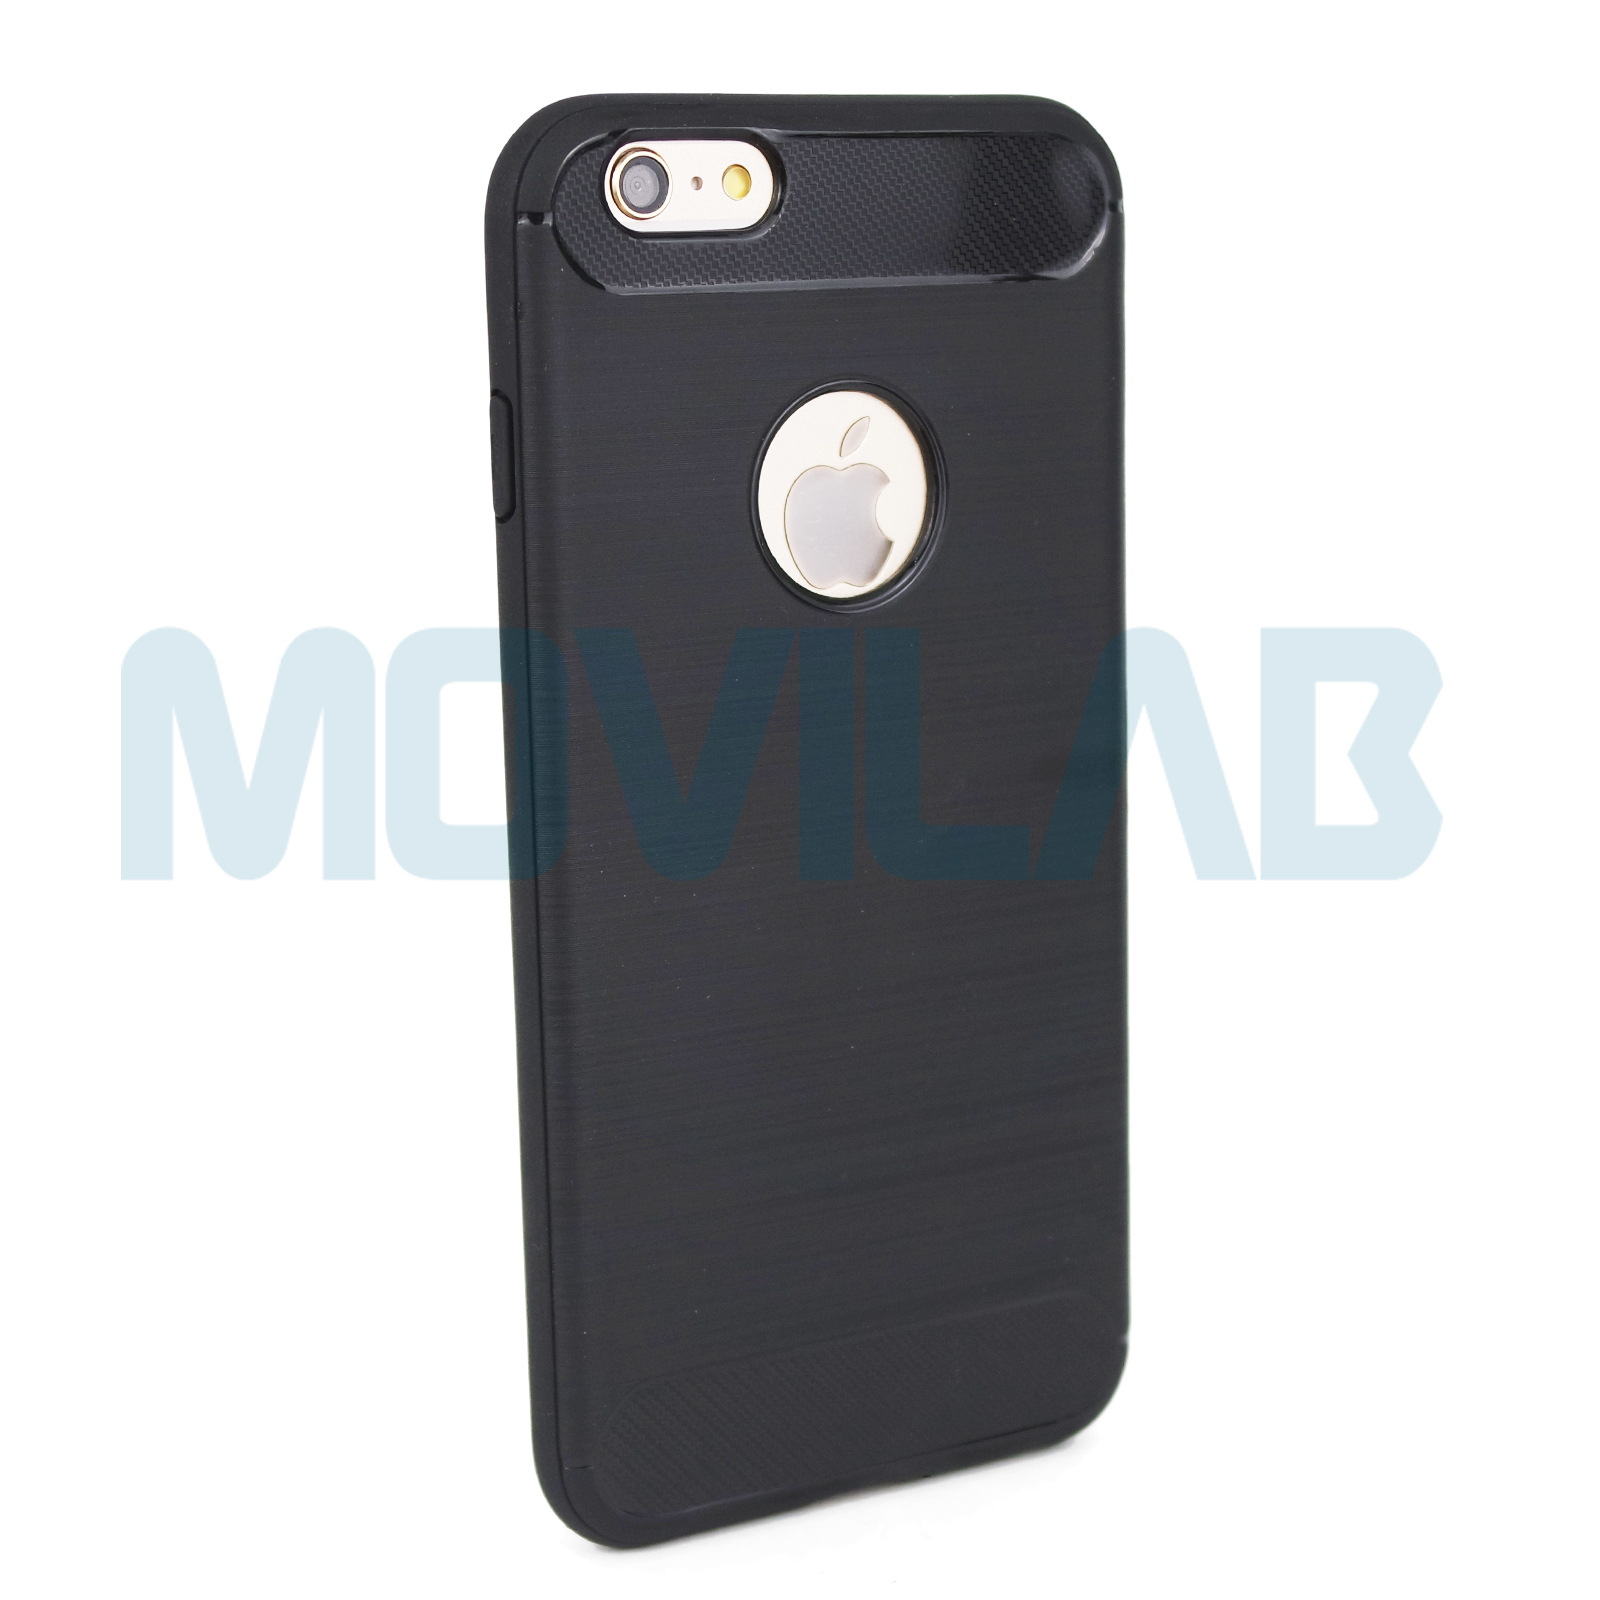 Funda Iphone 6 Plus carbono